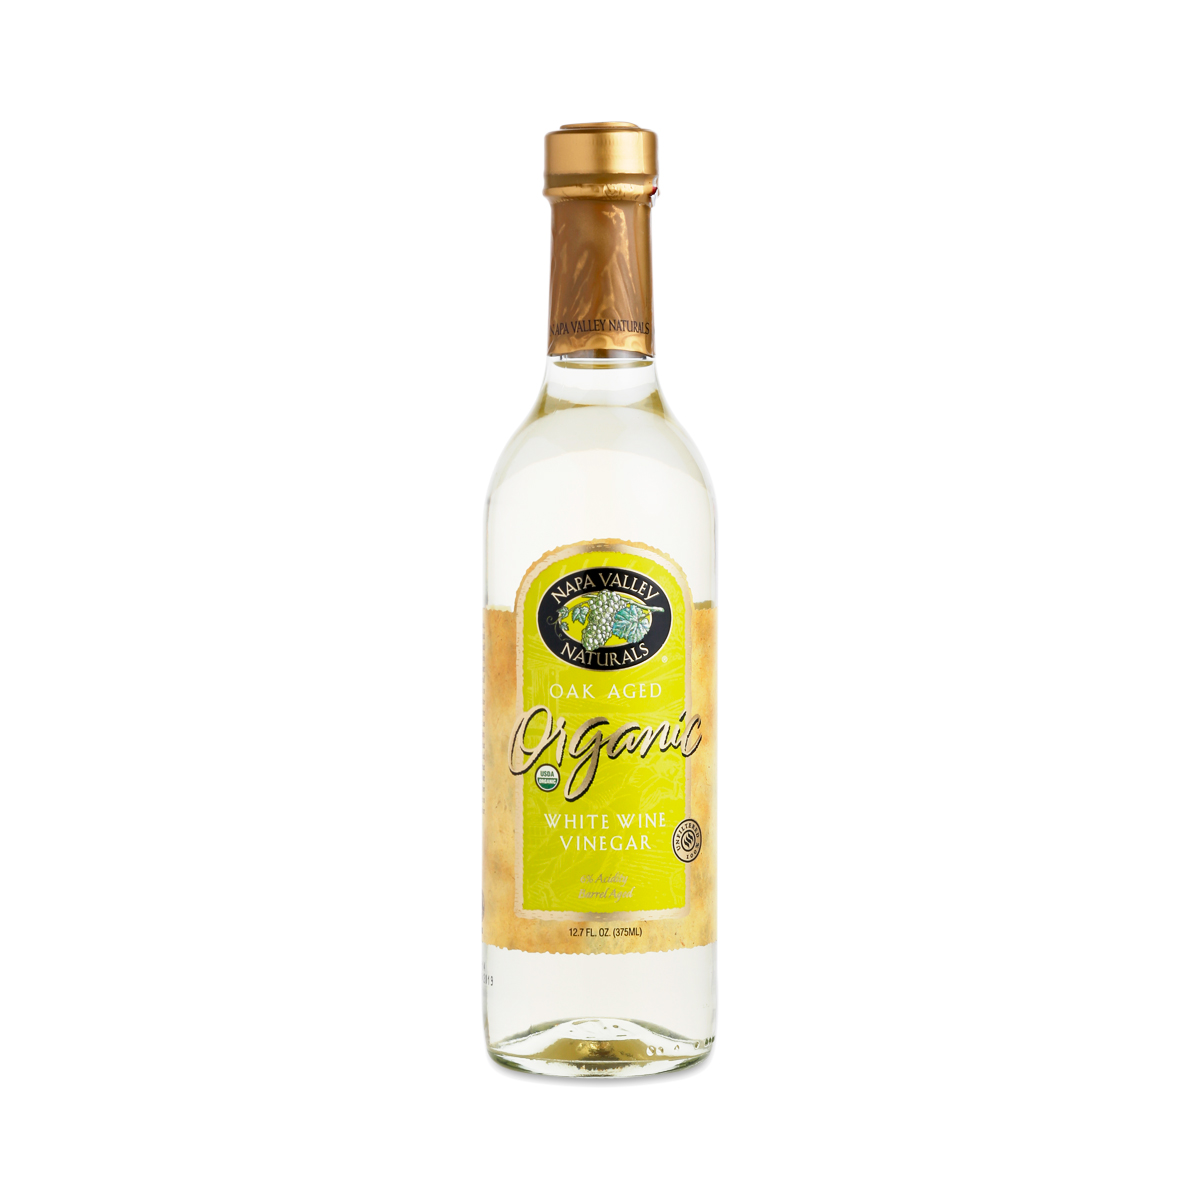 Napa Valley Naturals Organic White Wine Vinegar 12.7 oz bottle